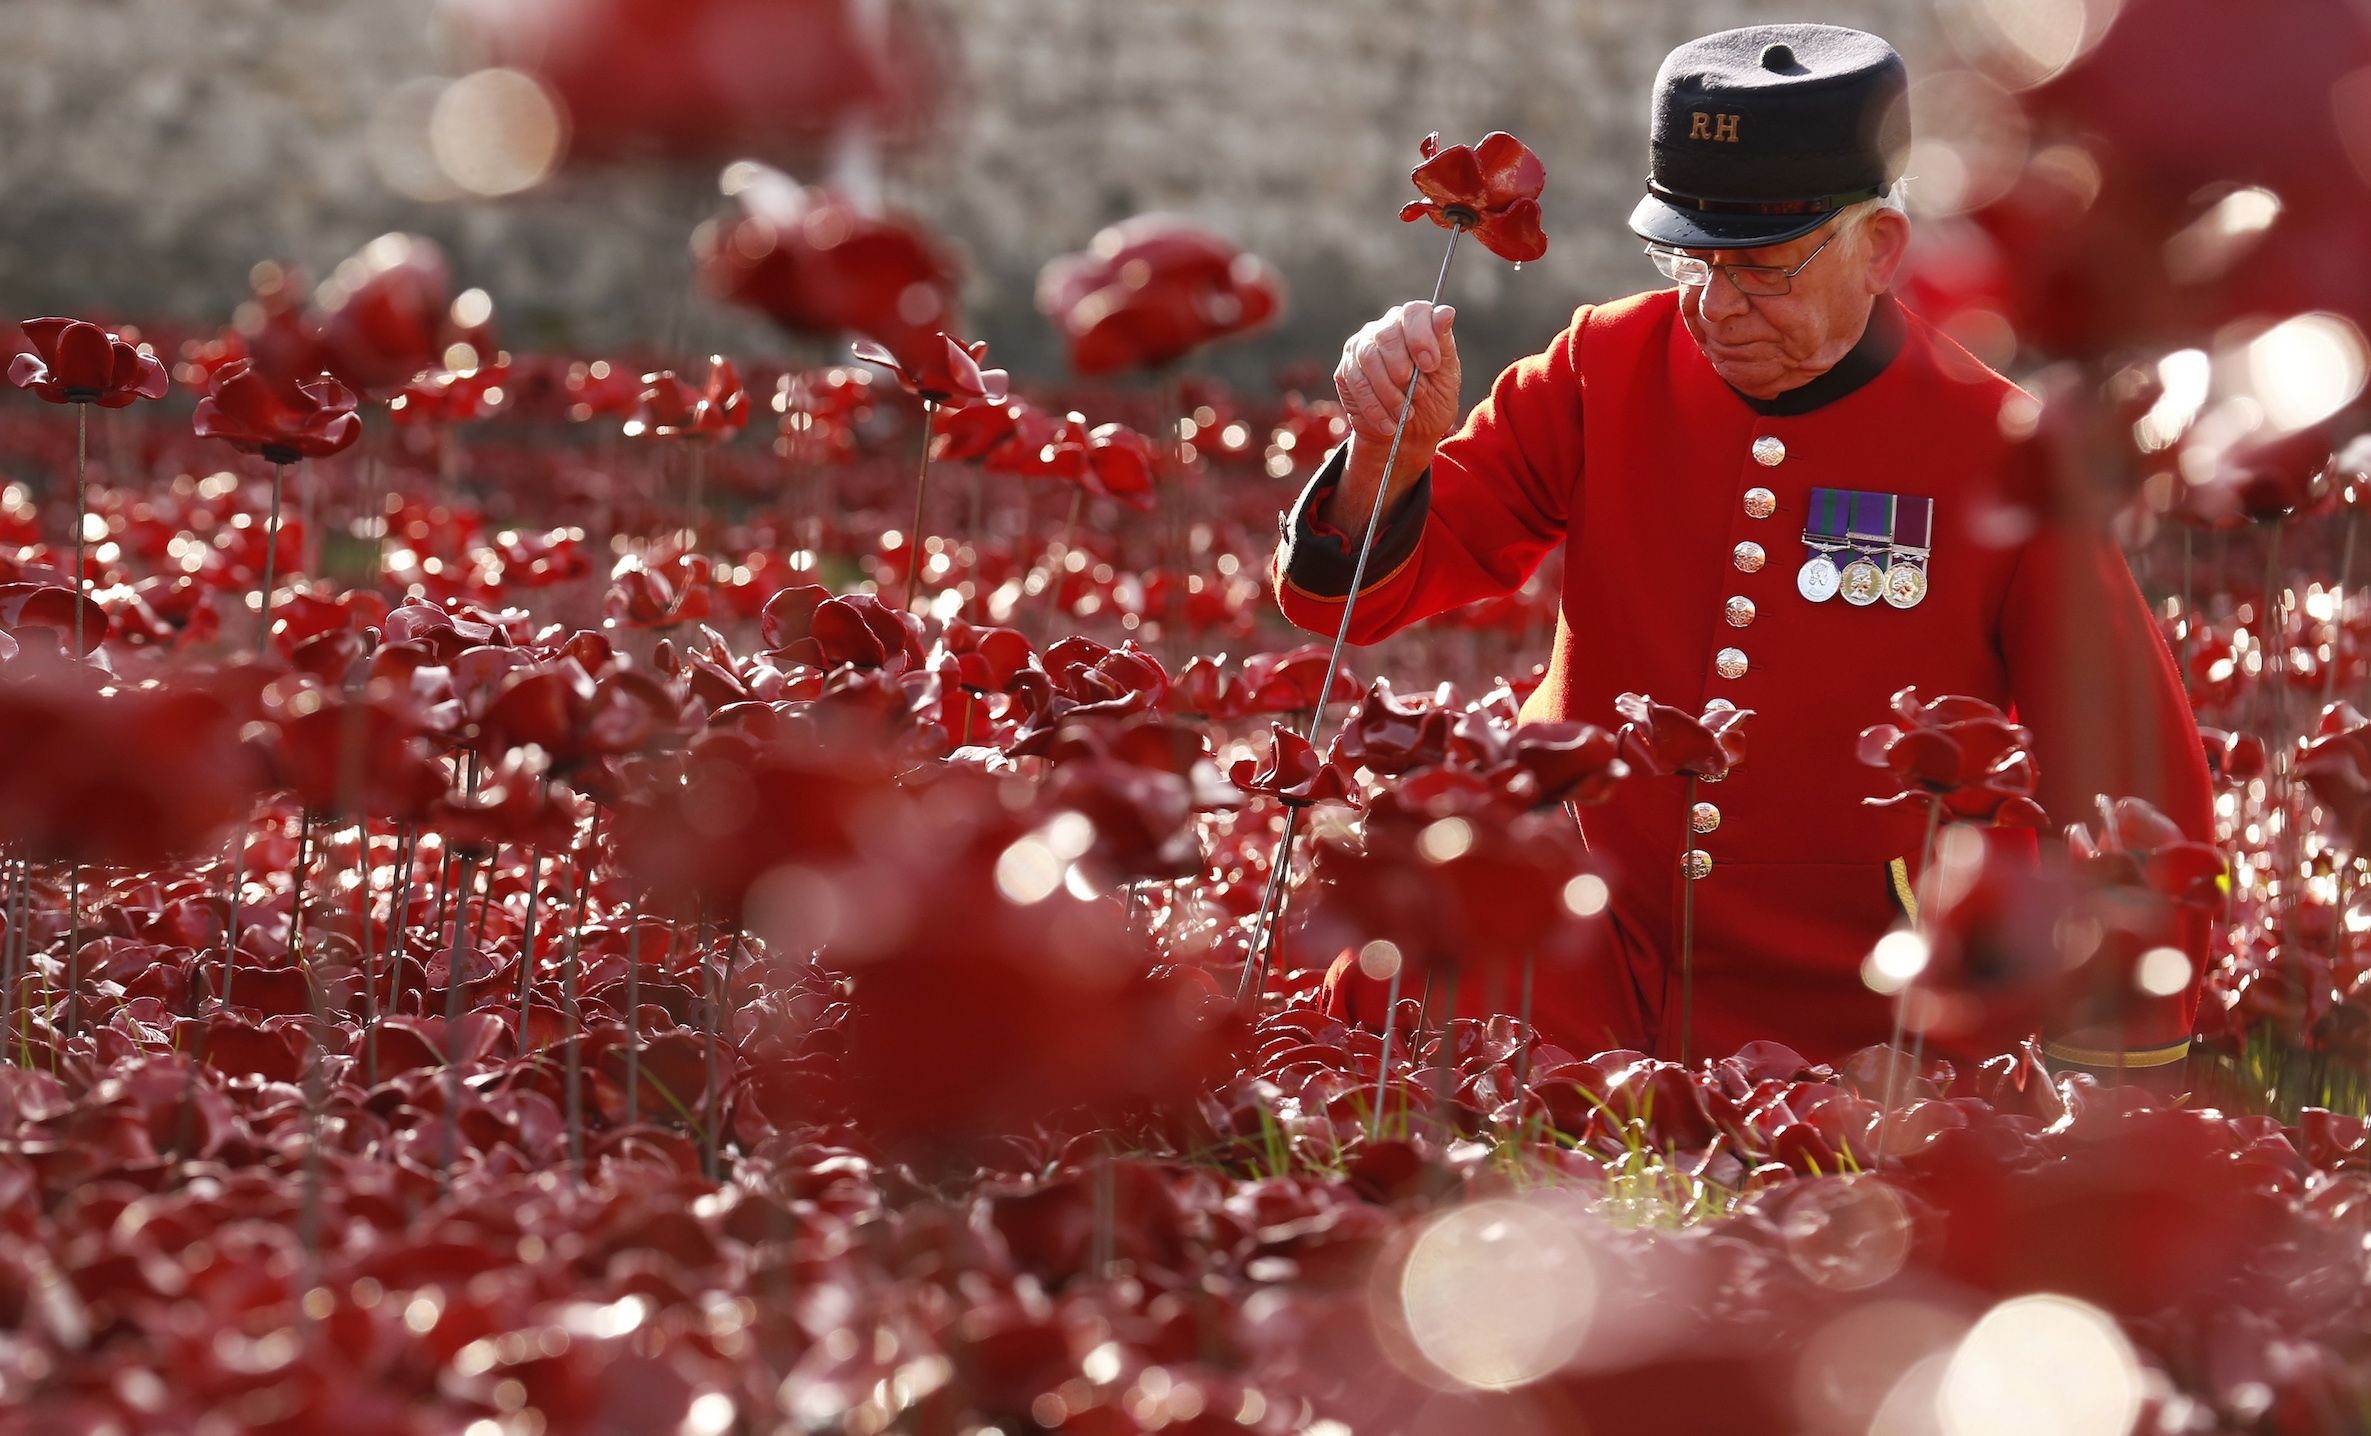 """Chelsea Pensioner Albert Willis plants a ceramic poppy amongst other poppies that form part of the art installation called """"Blood Swept Lands and Seas of Red"""" at the Tower of London October 9, 2014. The evolving art installation, which will be completed on November 11, will create a commemoration for the centenary of World War One. REUTERS/Luke MacGregor (BRITAIN - Tags: MILITARY SOCIETY TRAVEL ANNIVERSARY TPX IMAGES OF THE DAY) - RTR49IS2"""